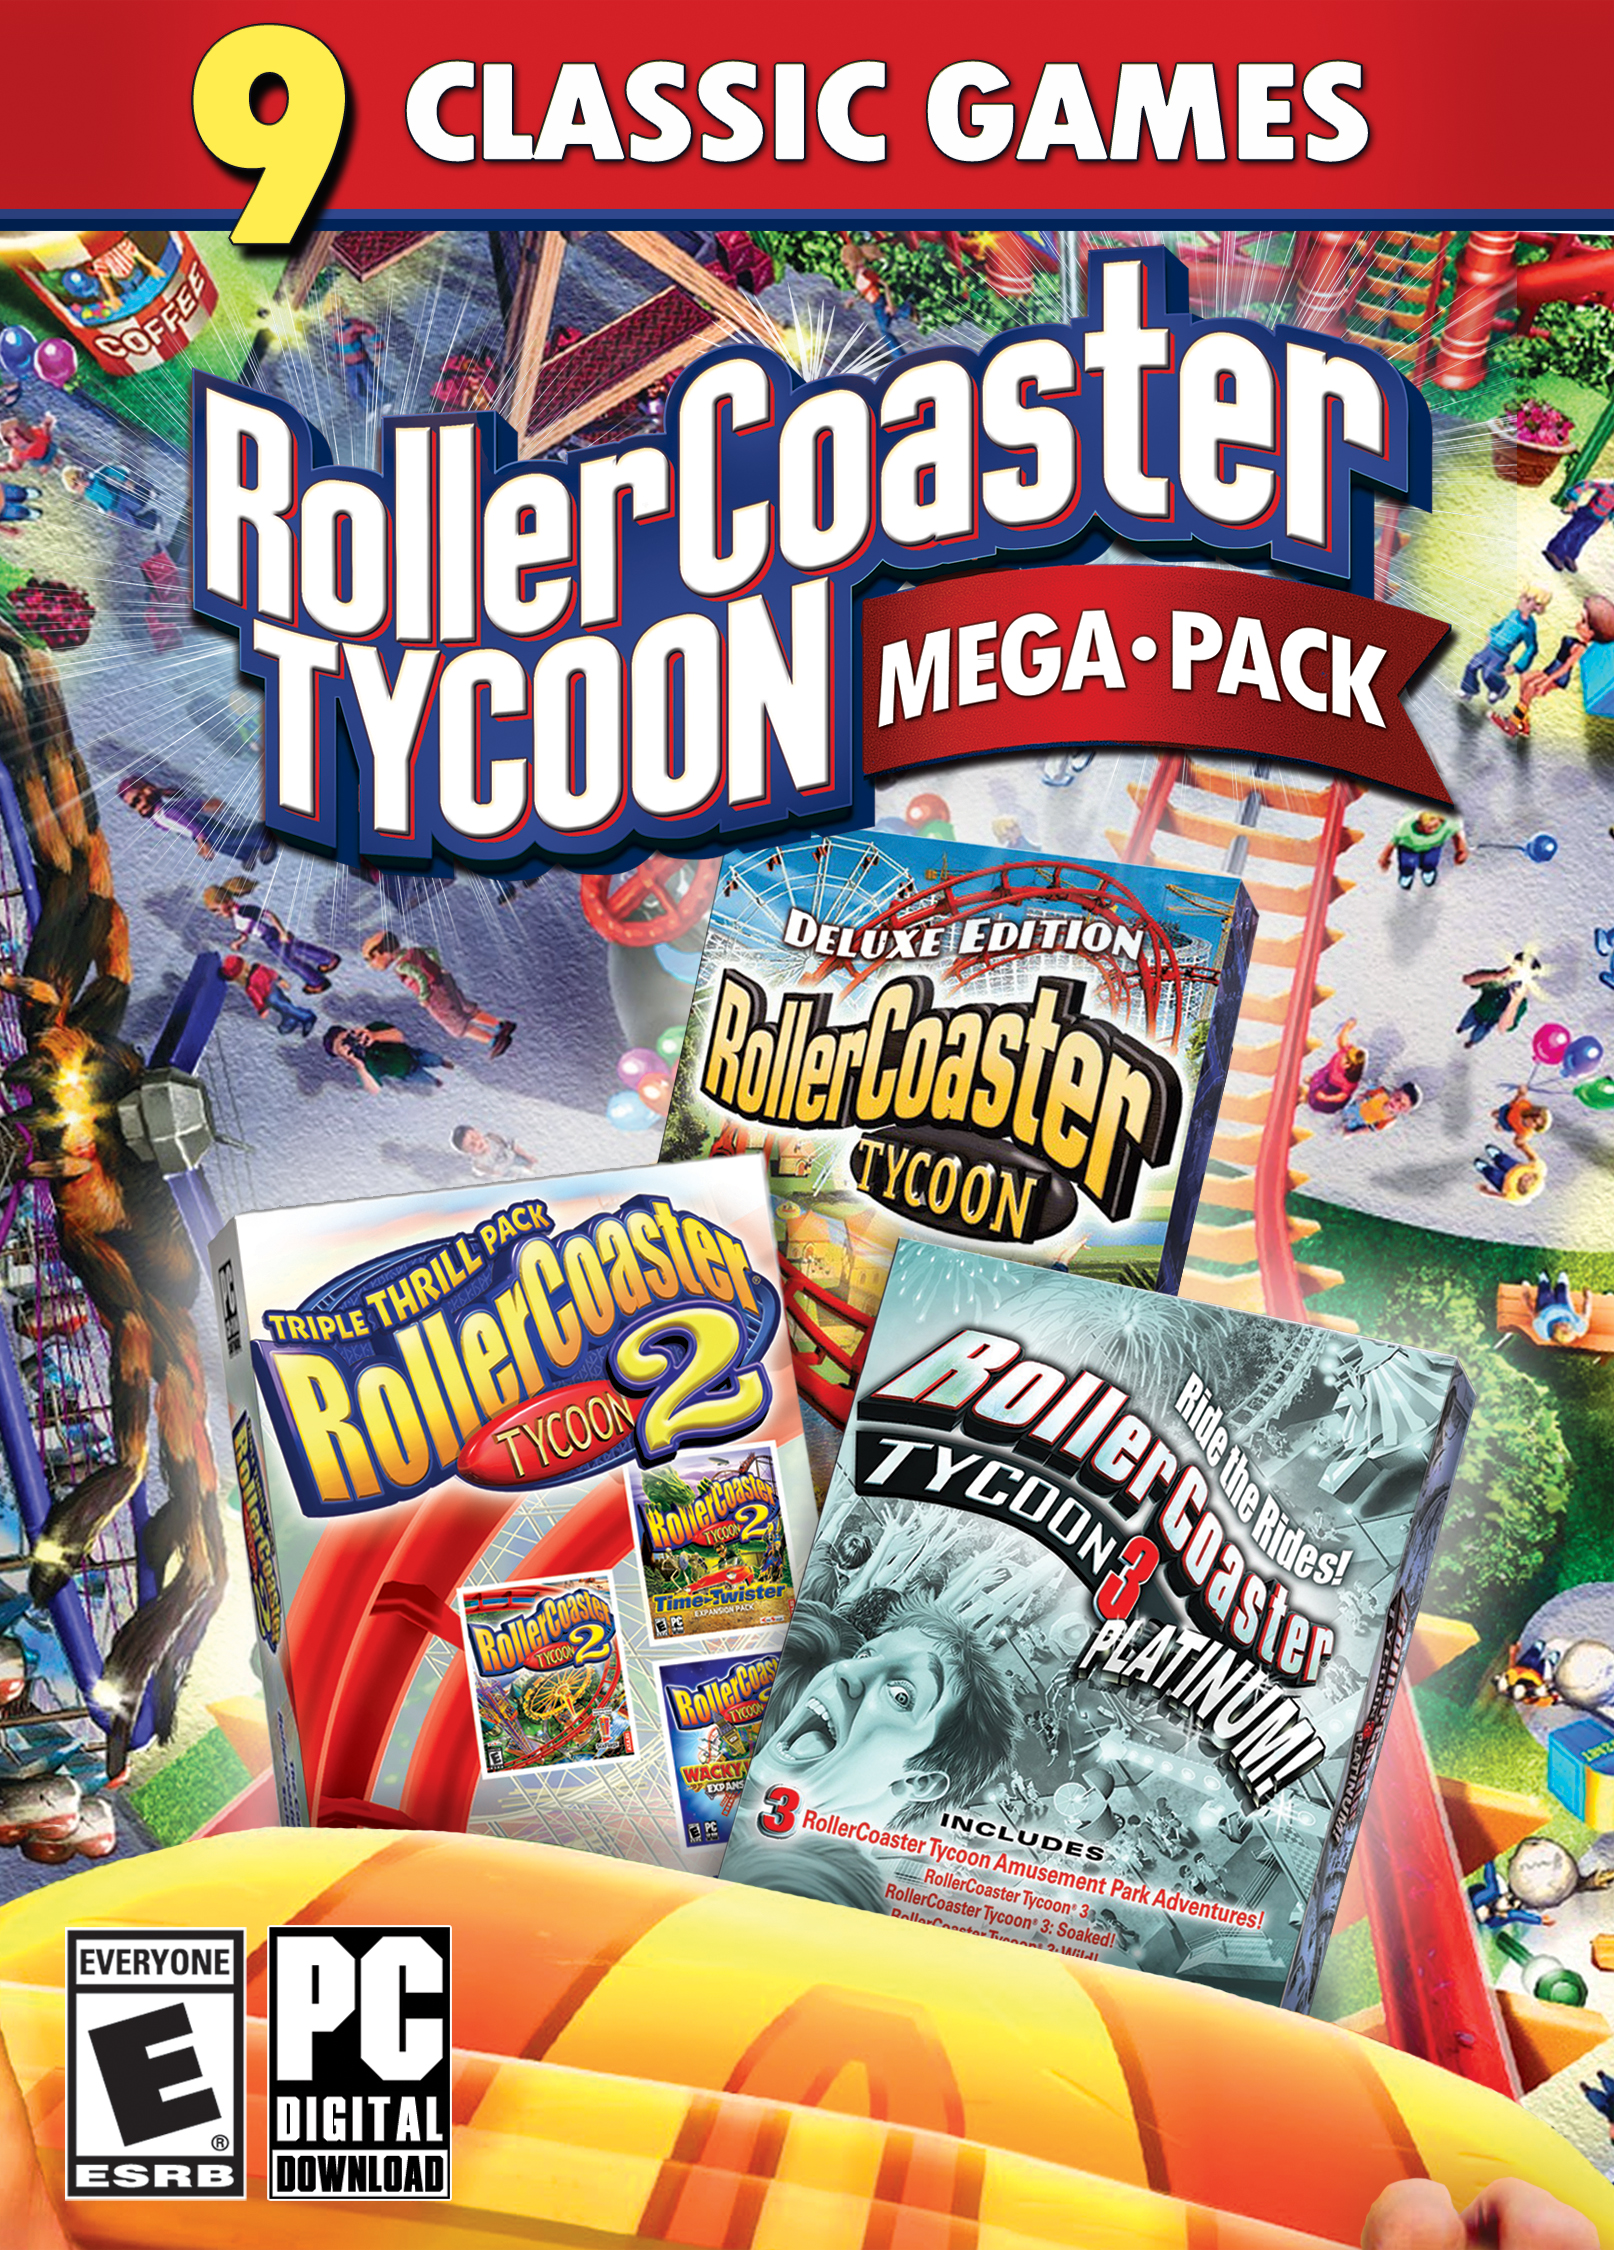 RollerCoaster Tycoon Mega Pack Download – PlayGamesly